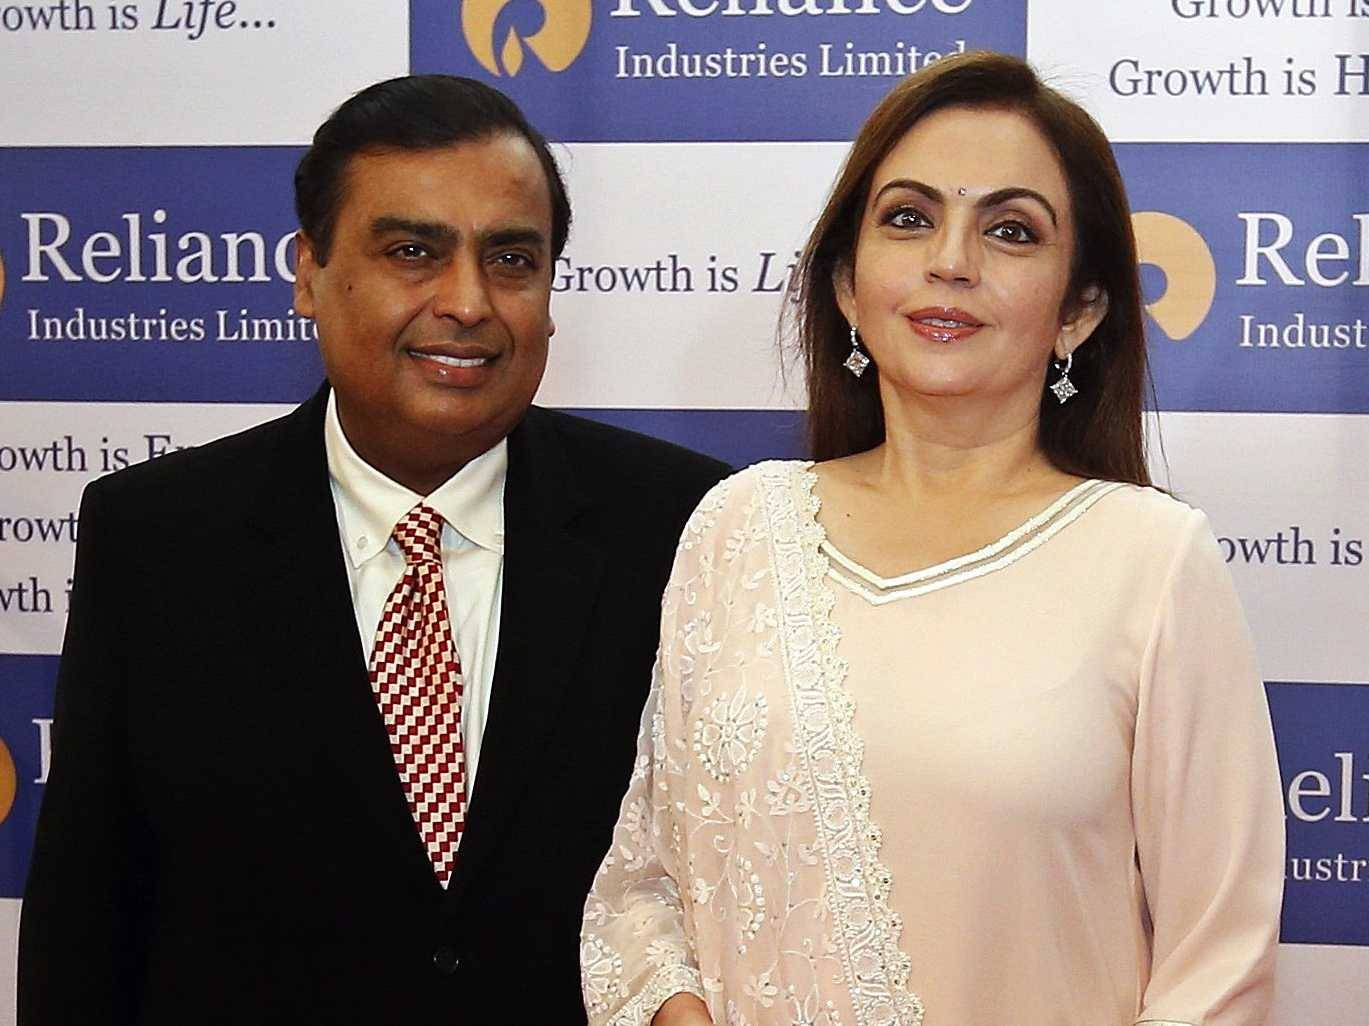 Nita-Ambani-is-married-to-industrialist-Mukesh-Ambani-the-richest-man-in-India-